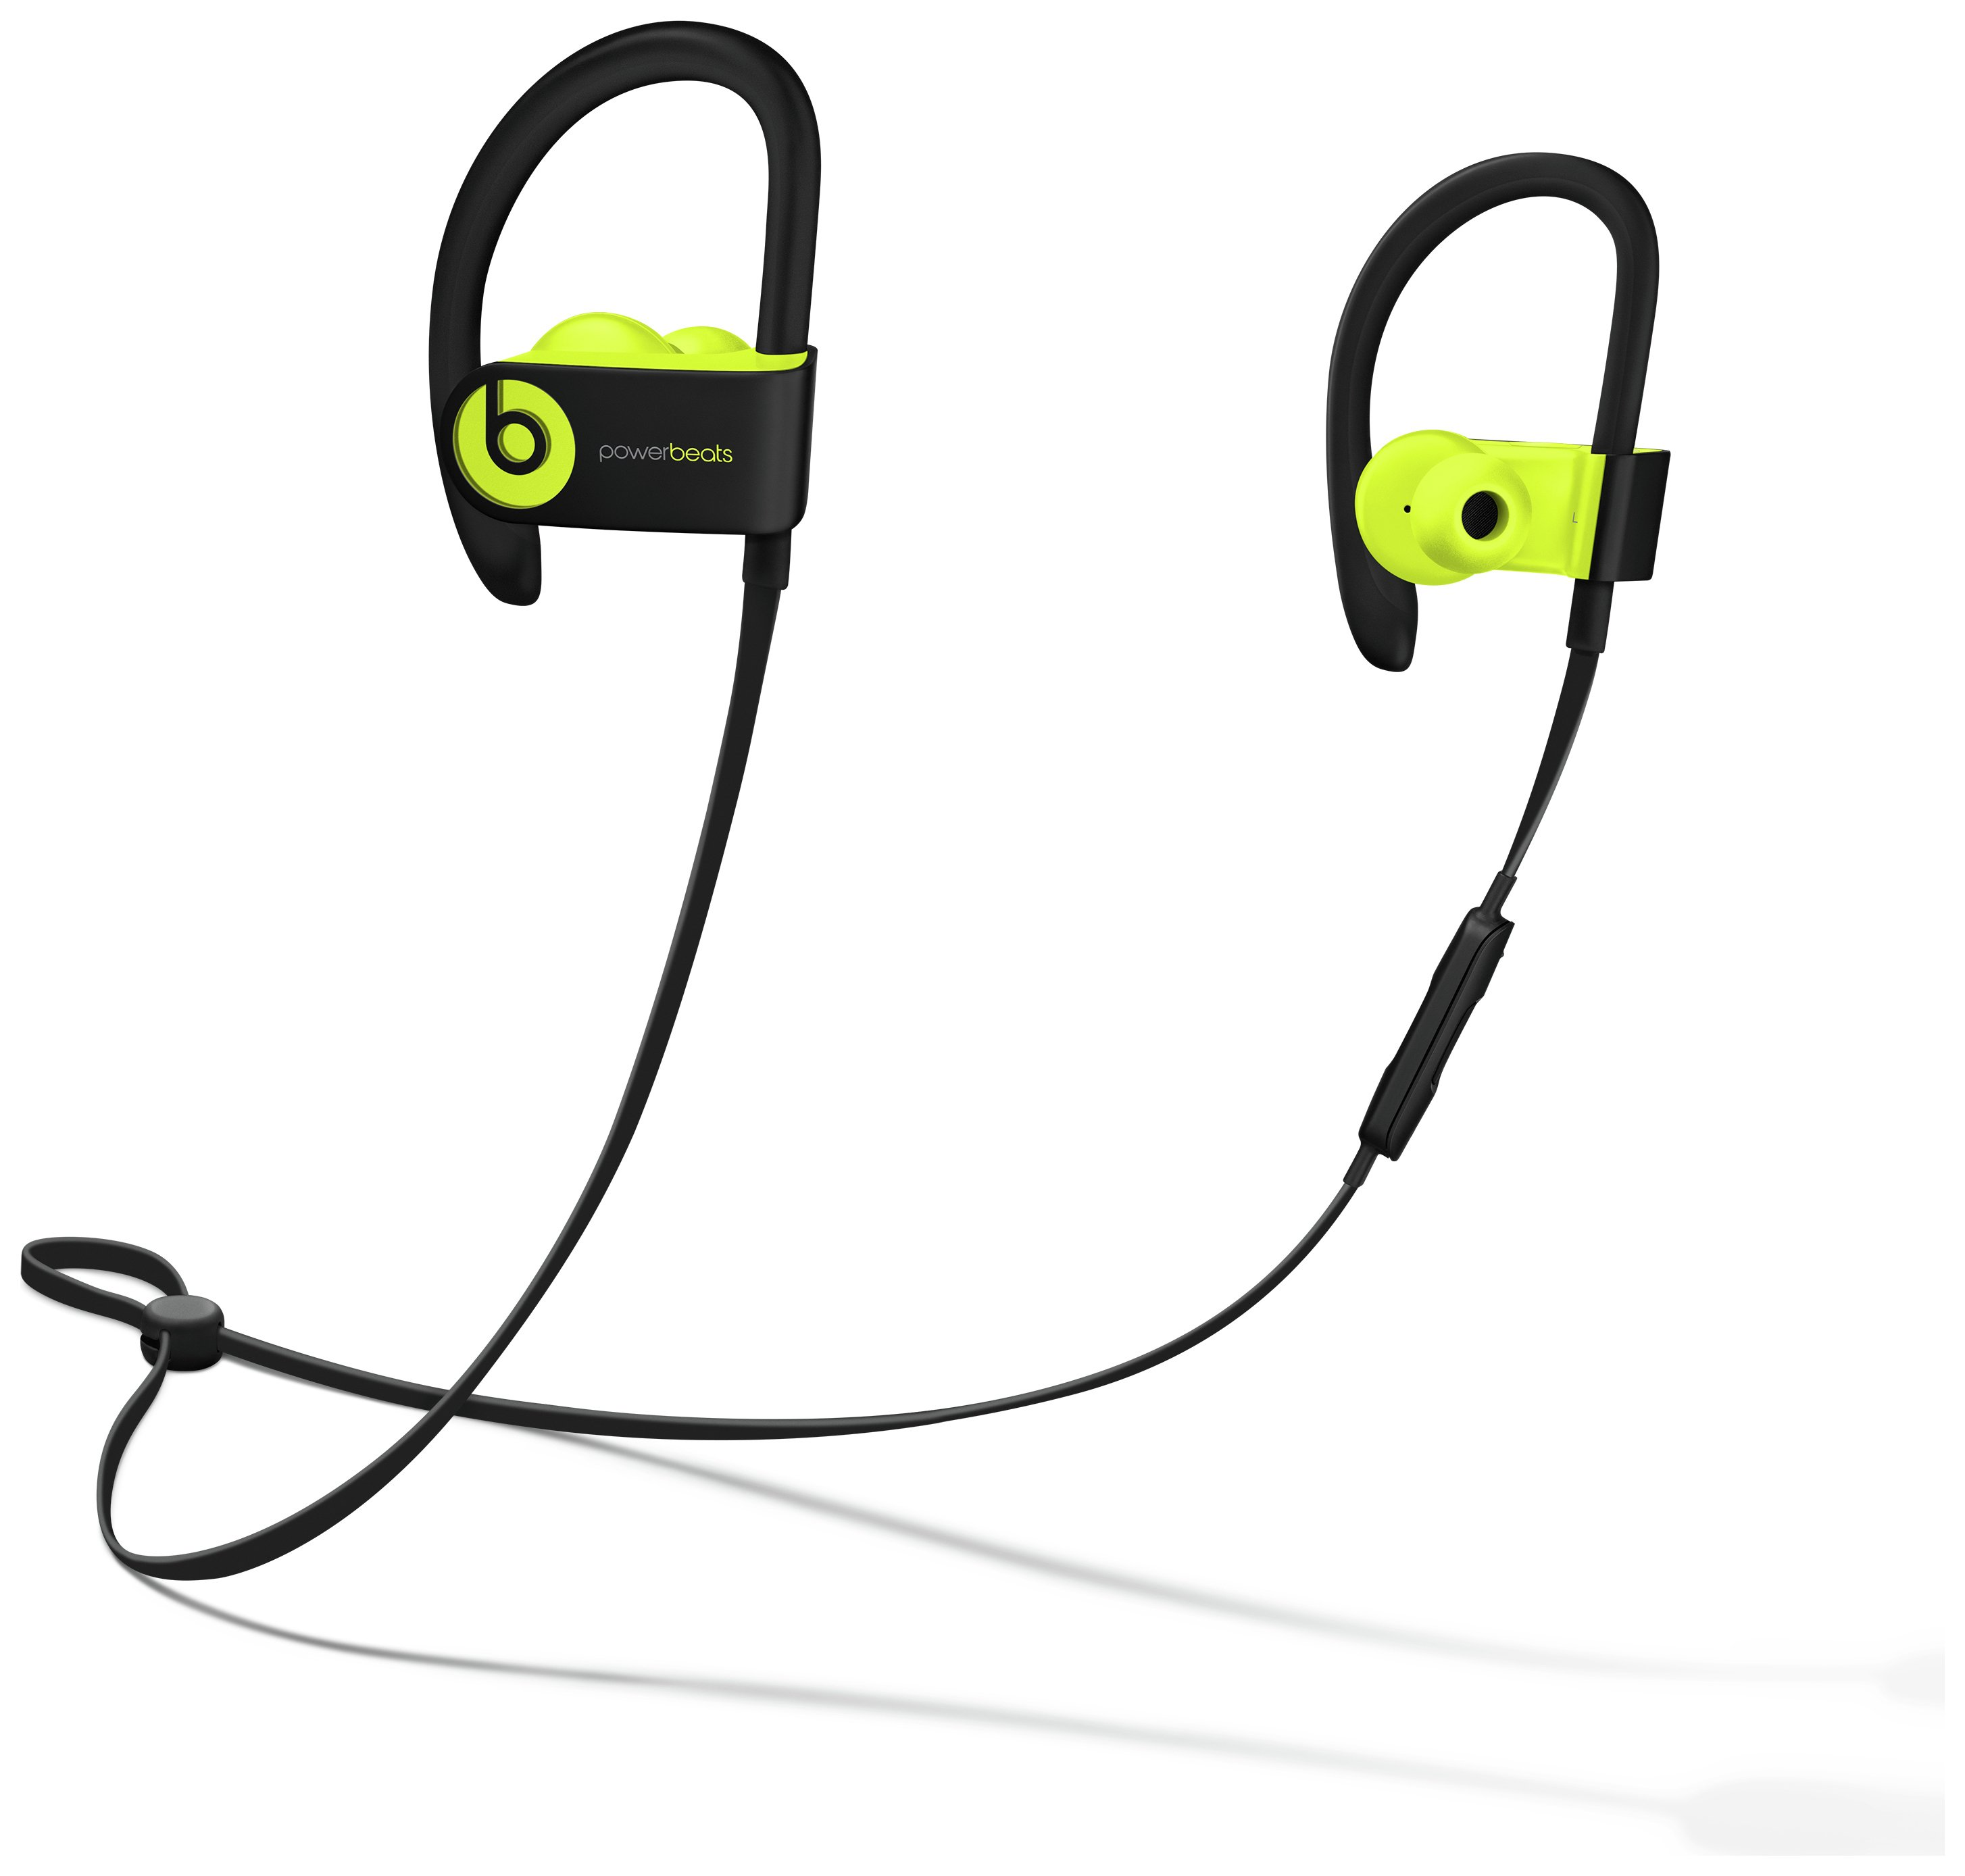 Beats by Dre Powerbeats 3 Wireless Earphones - Shock Yellow